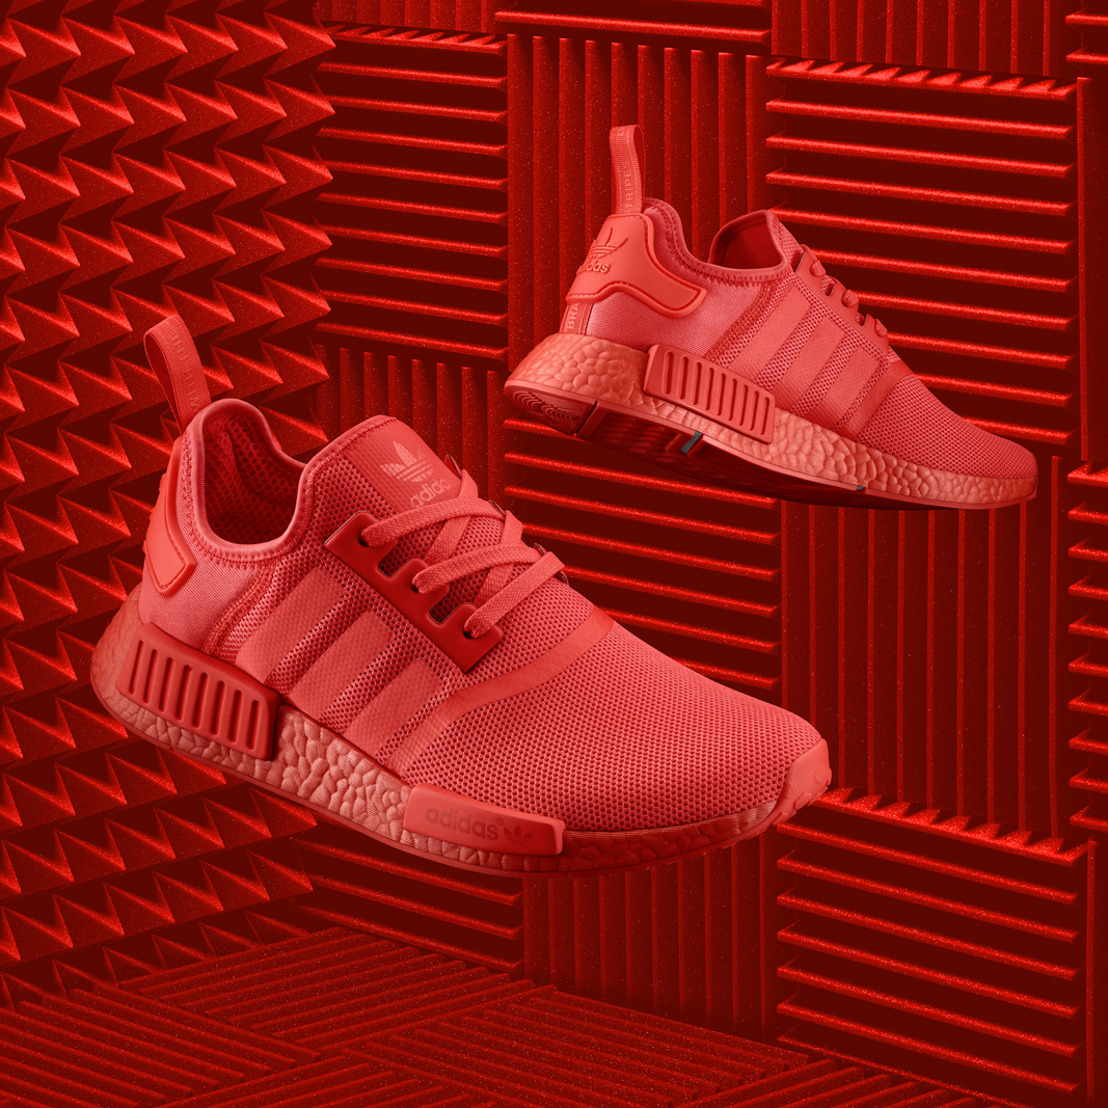 El NMD Color Boost pack de adidas Originals define impecablemente el color